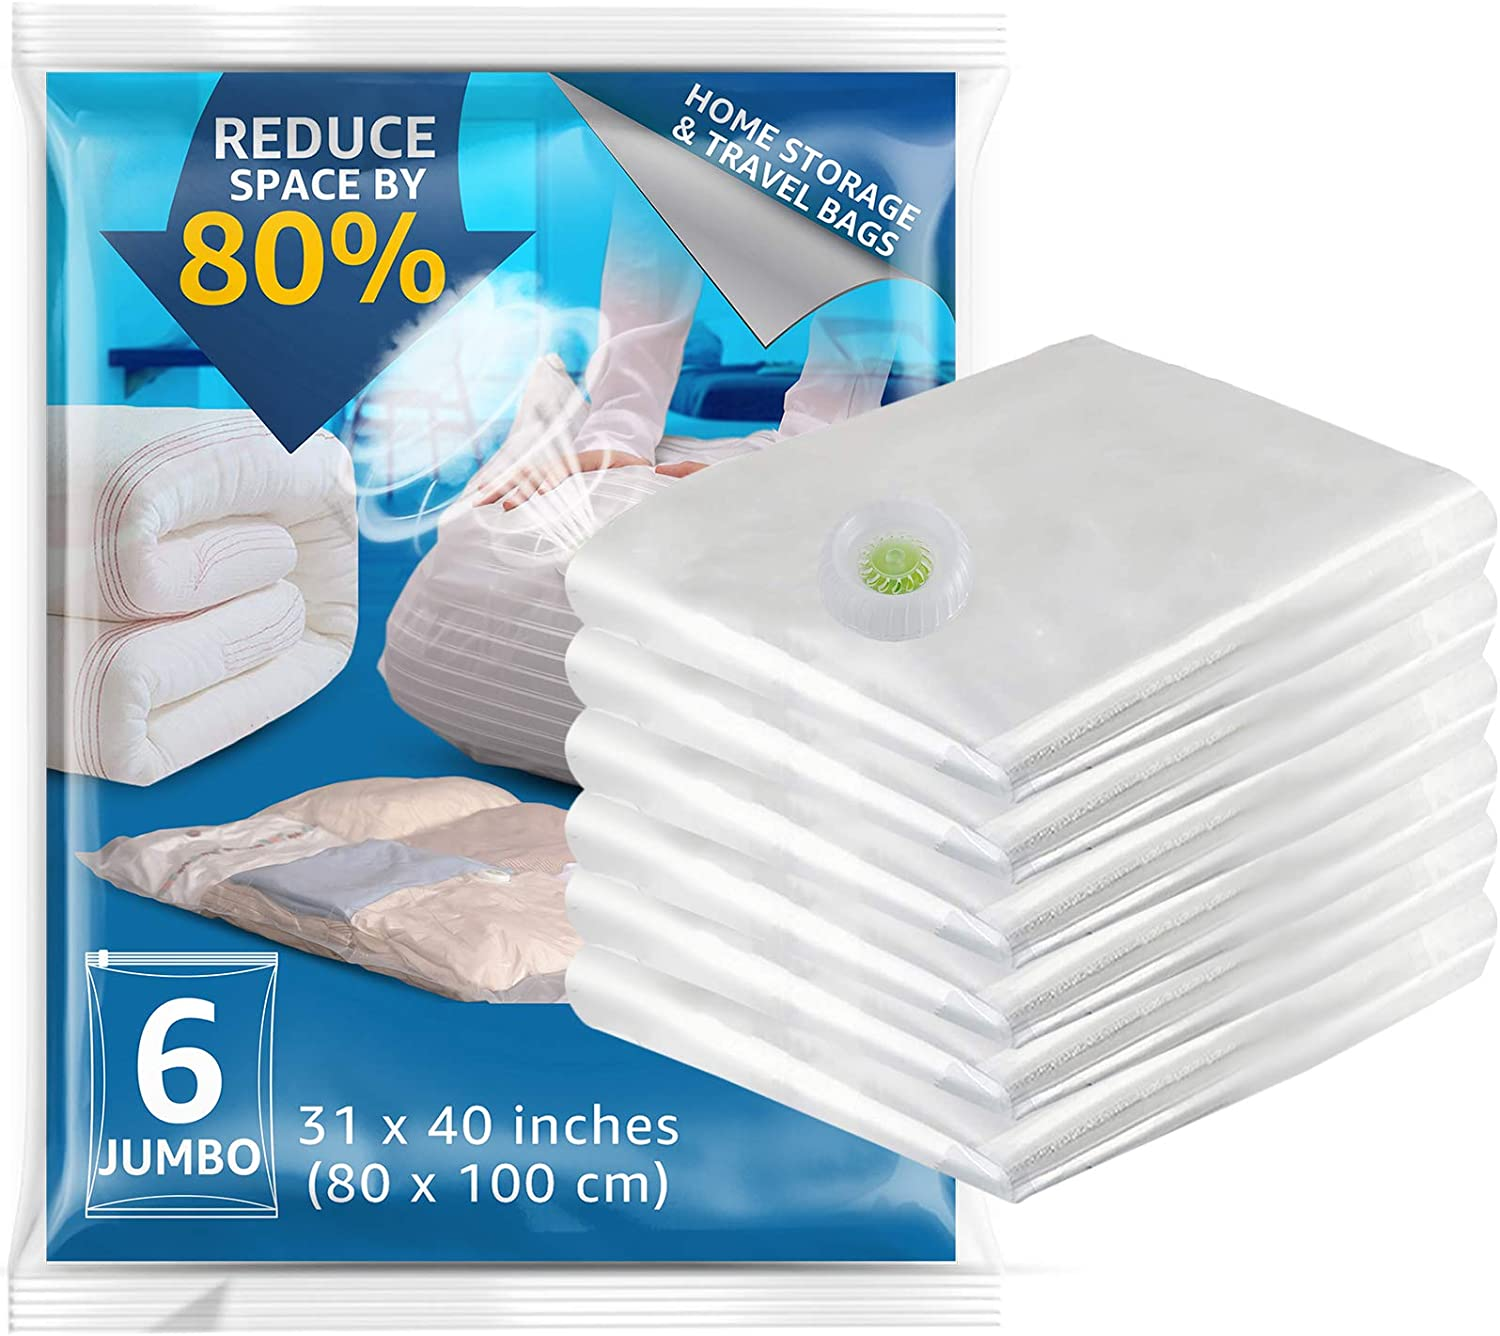 No Need to Use Hand Pump TAILI Premium Vacuum Storage Bags Blanket for Clothes New Air Valve Pillows 6 Pack Jumbo Space Saver Bags Comforters Towel 31x40 inches Reusable Travel Packing Bags